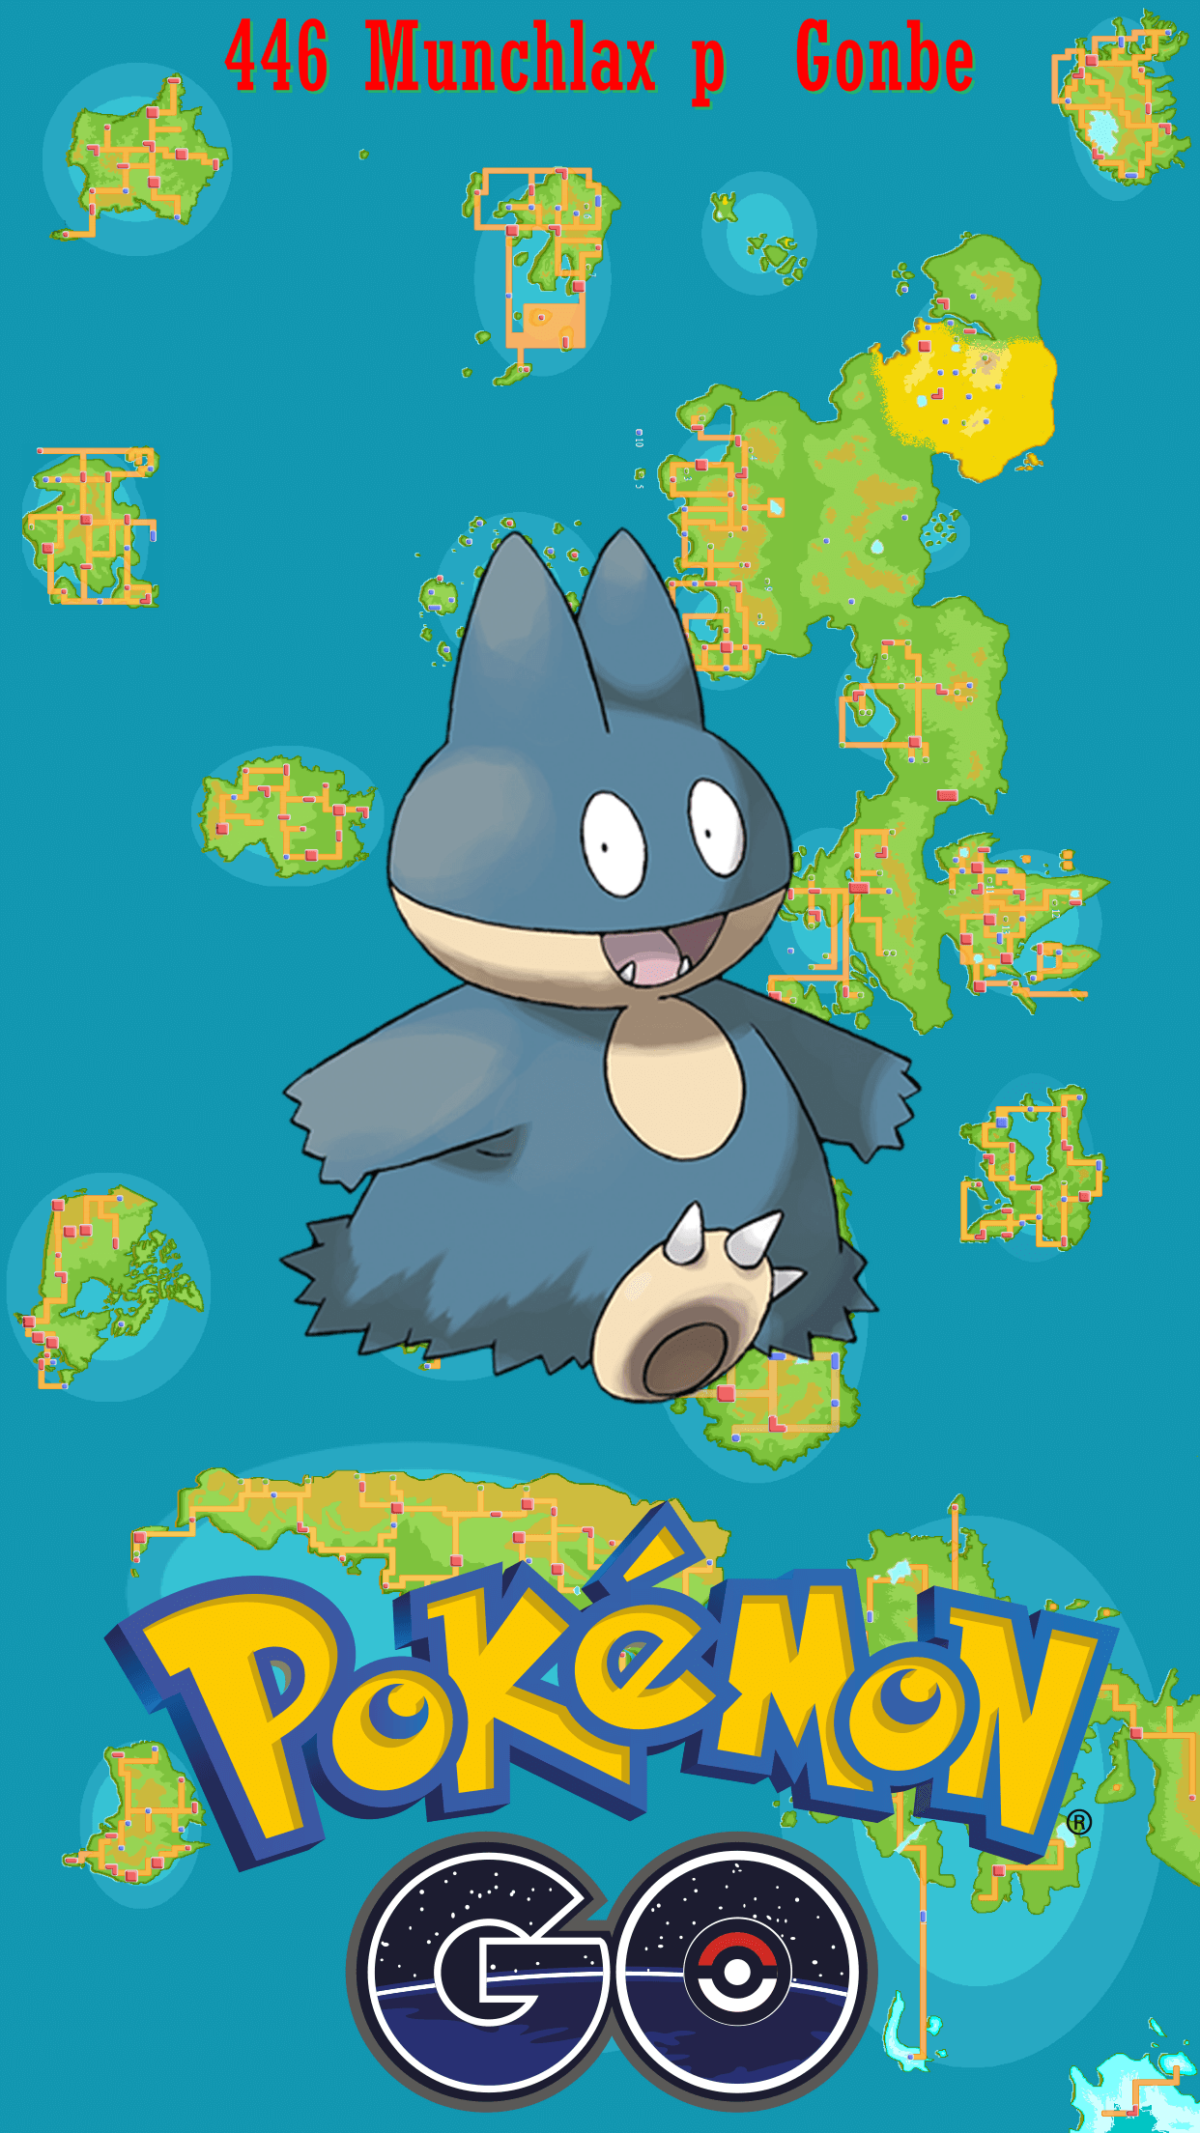 446 Street Map Munchlax p Gonbe | Wallpaper